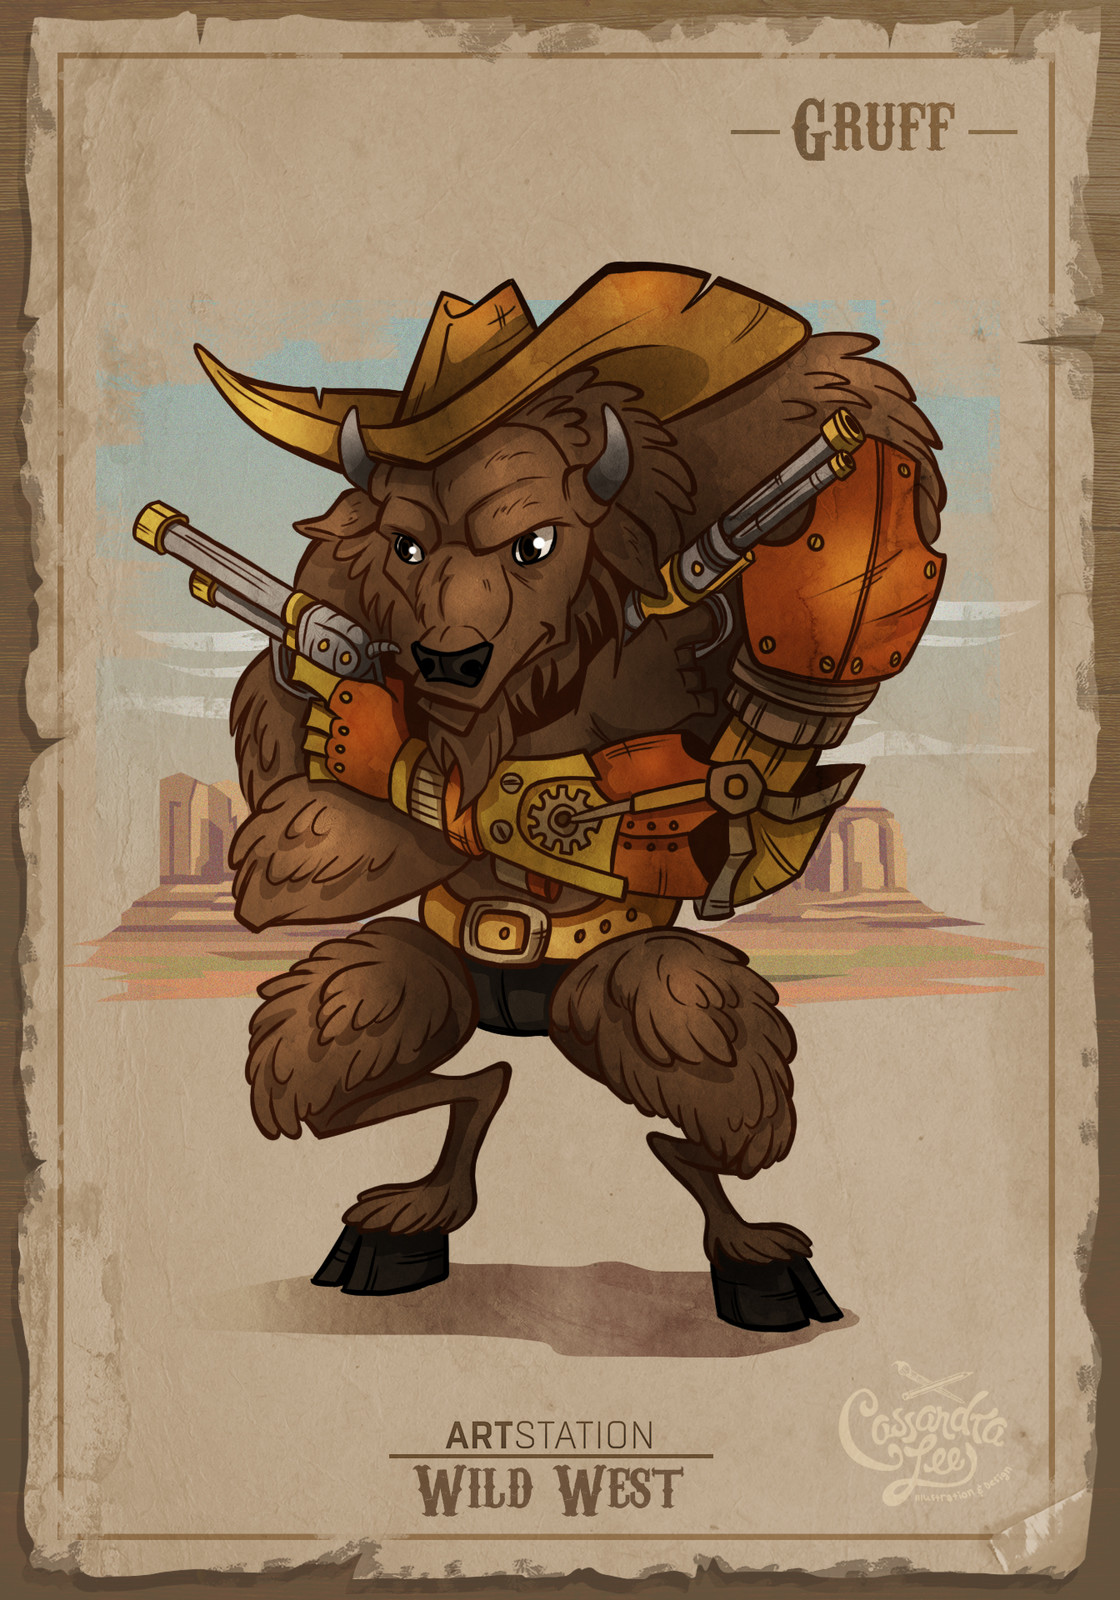 Gruff the cyborg buffalo gunslinger